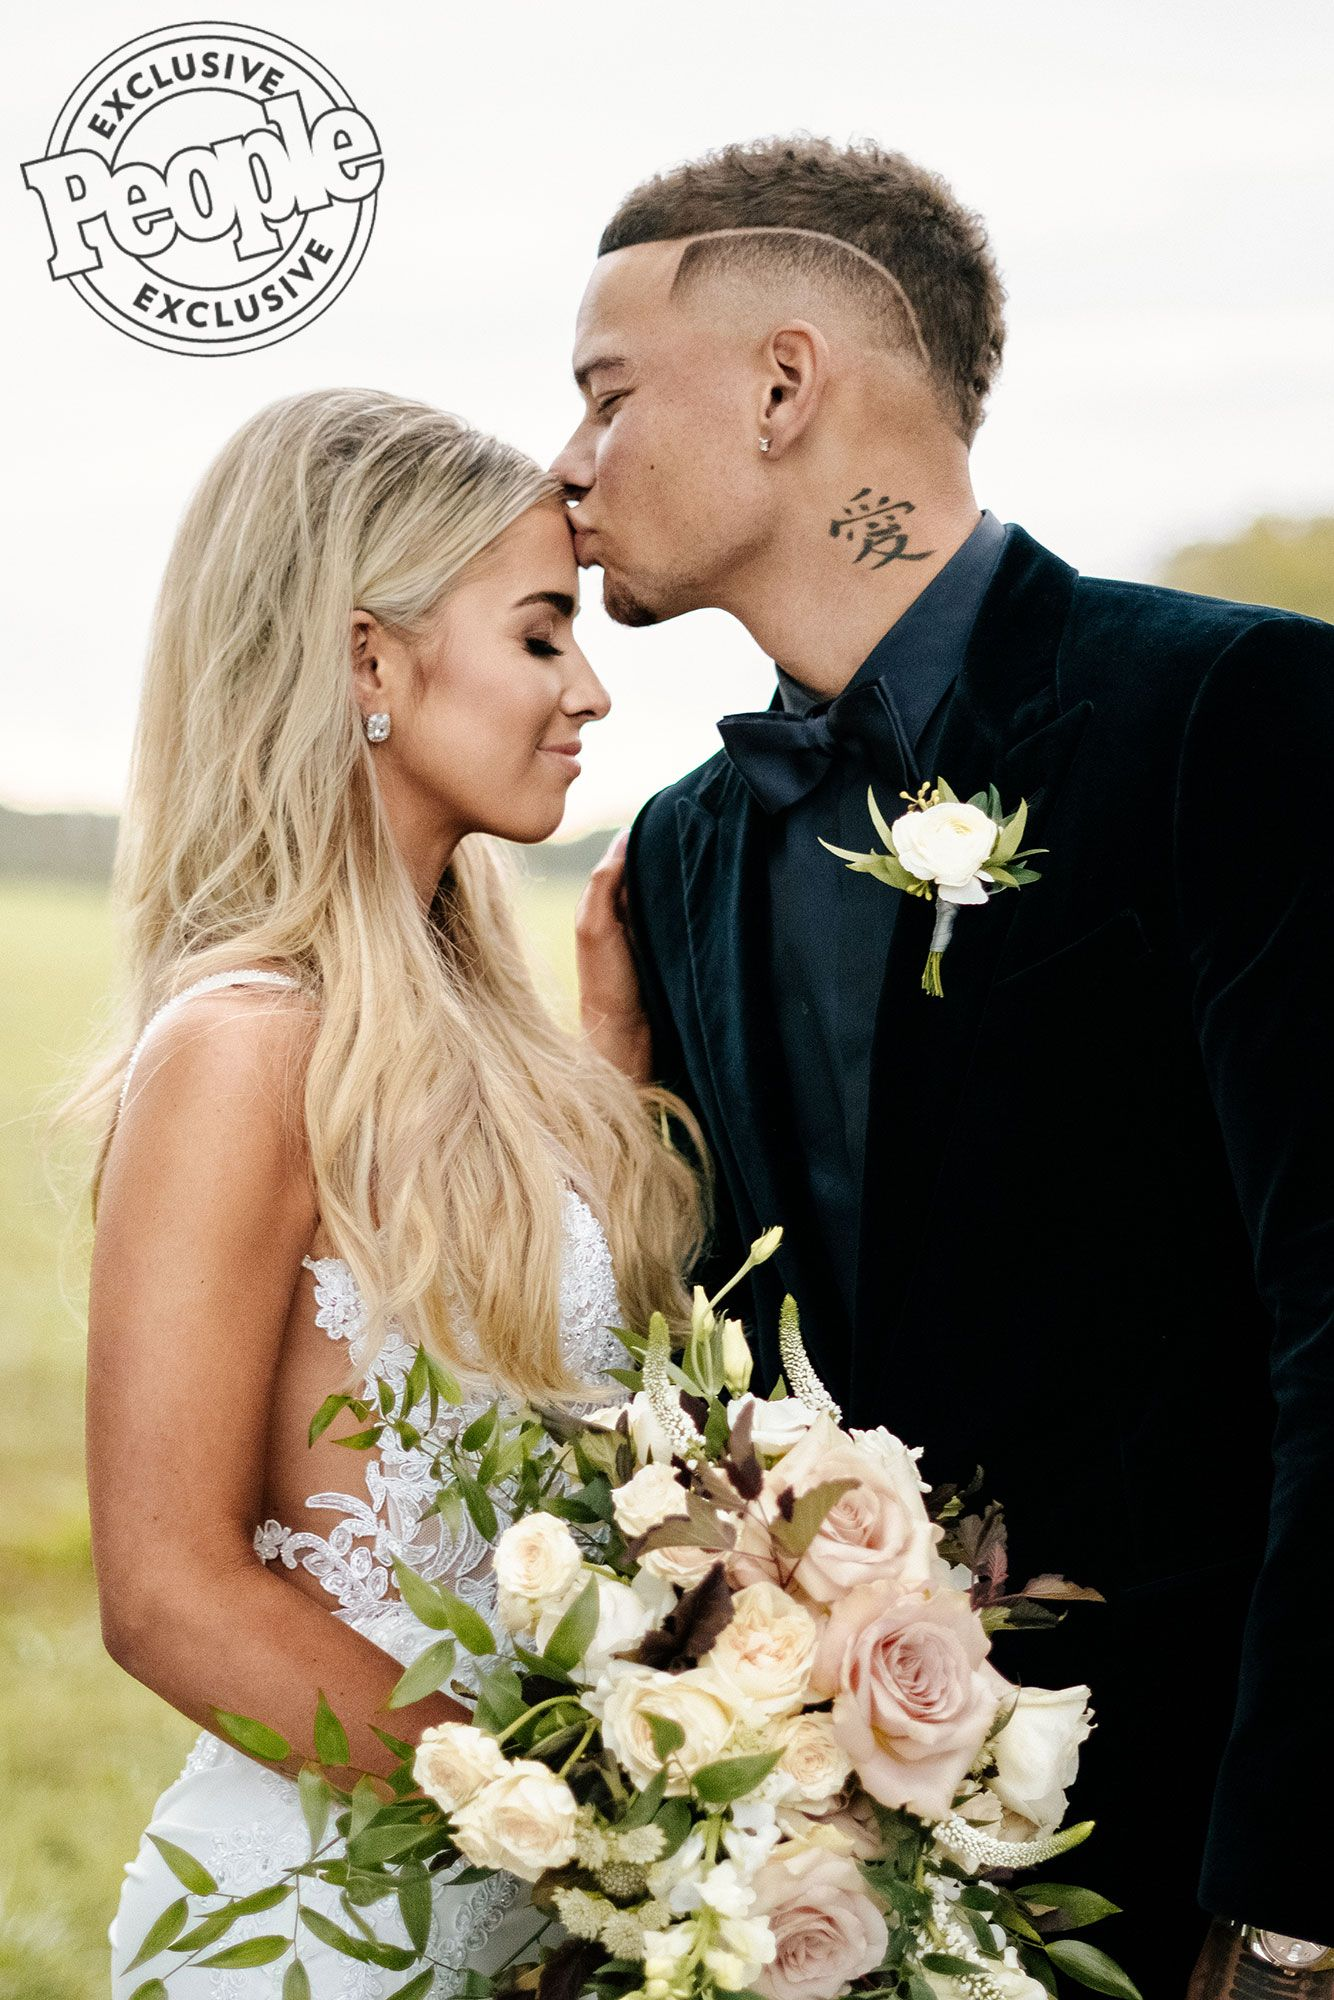 Kane Brown Is Married! Country Star Weds Katelyn Jae: See the Photo